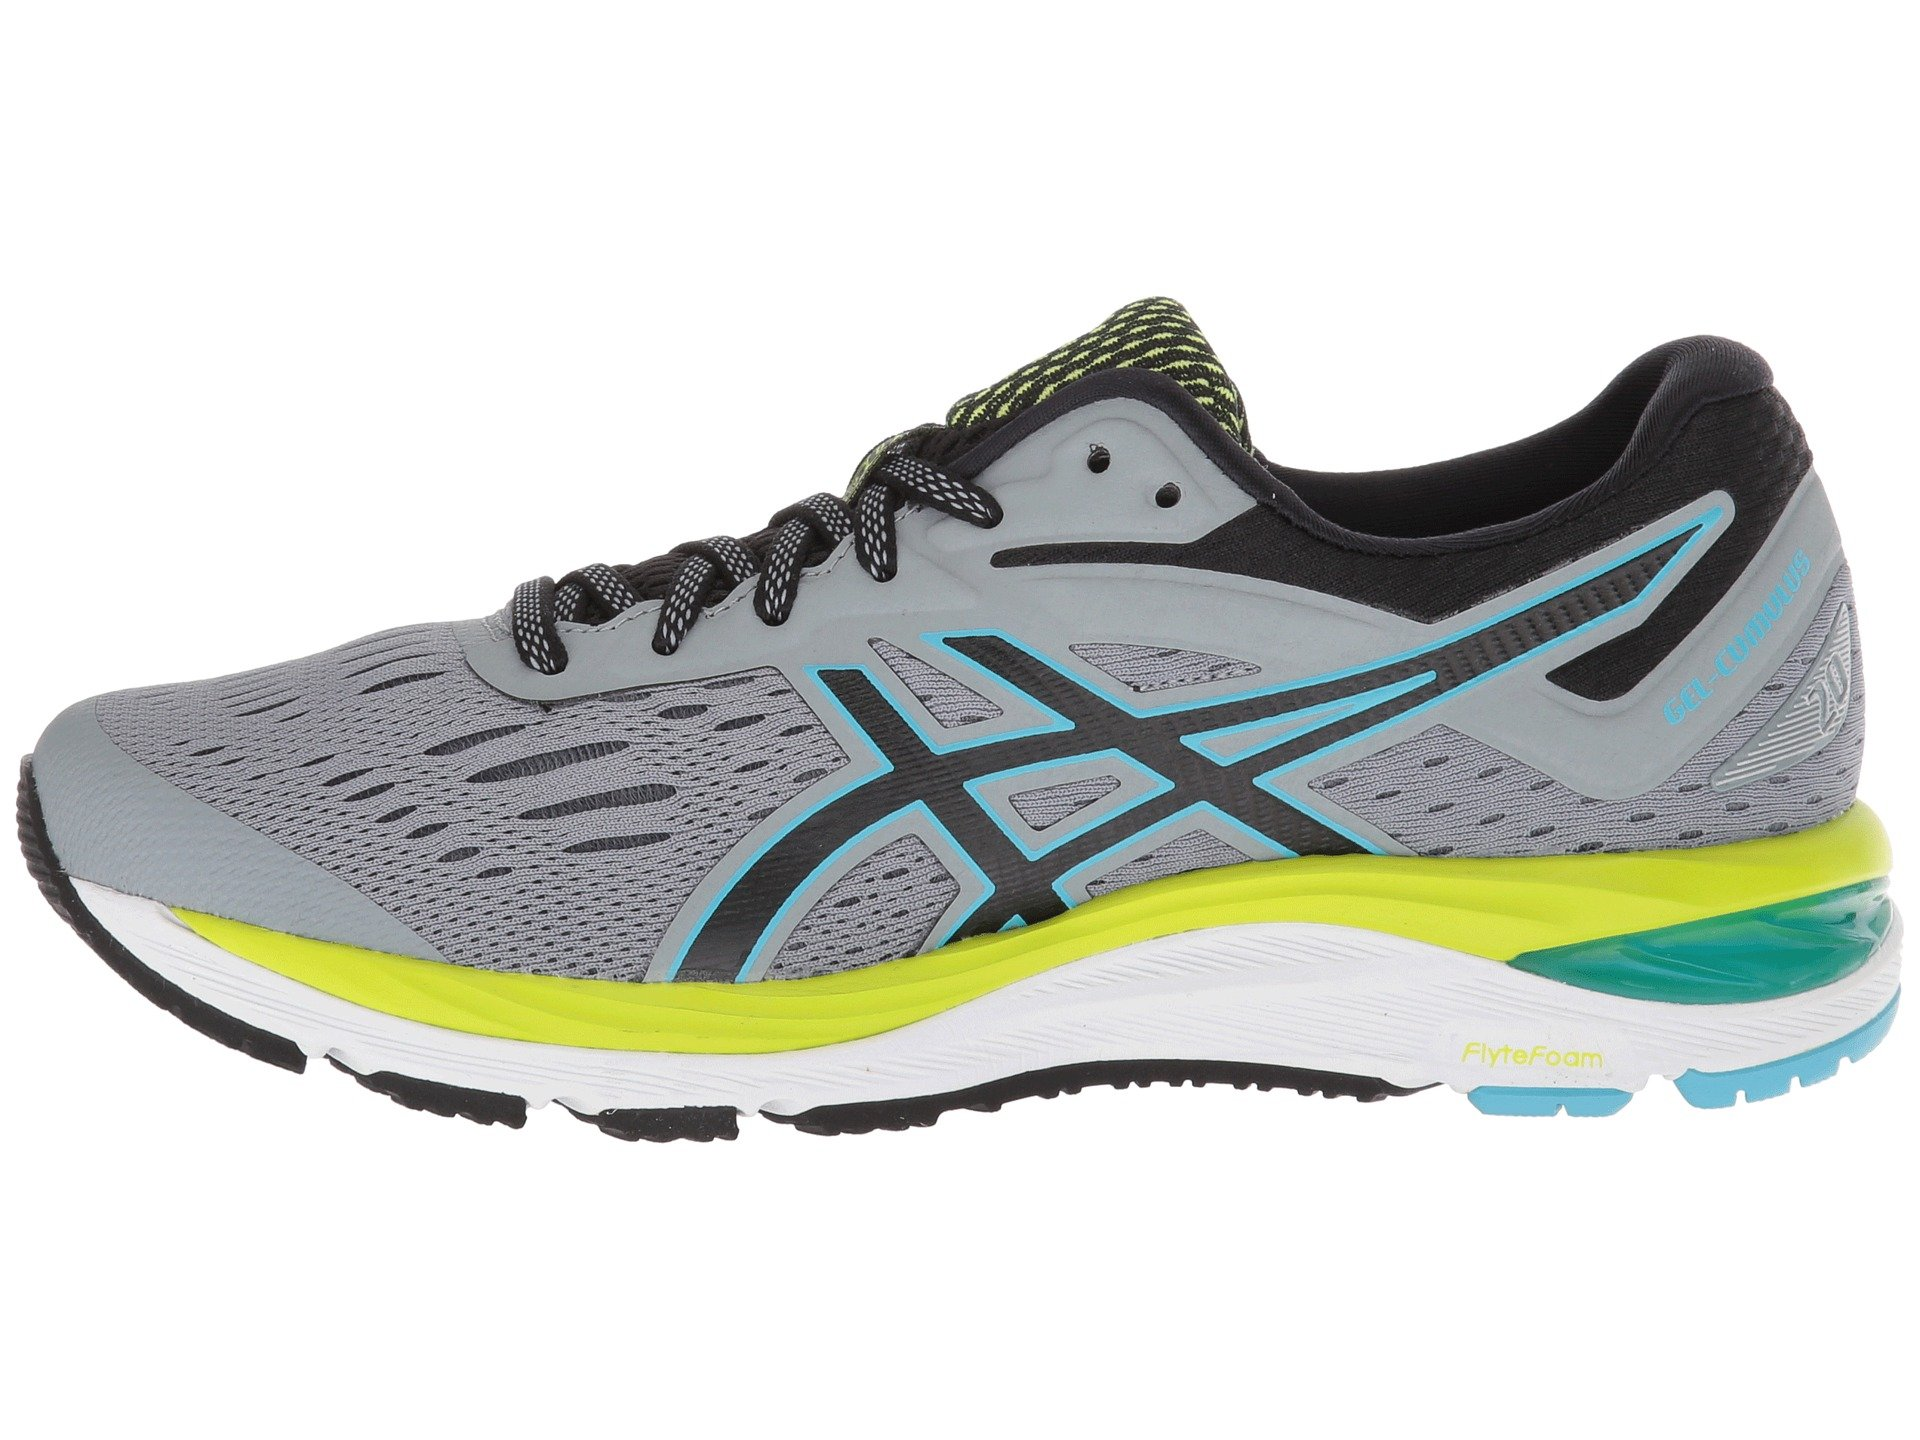 80c920386bd Asics Running Shoes | Best Asics Shoes 2019